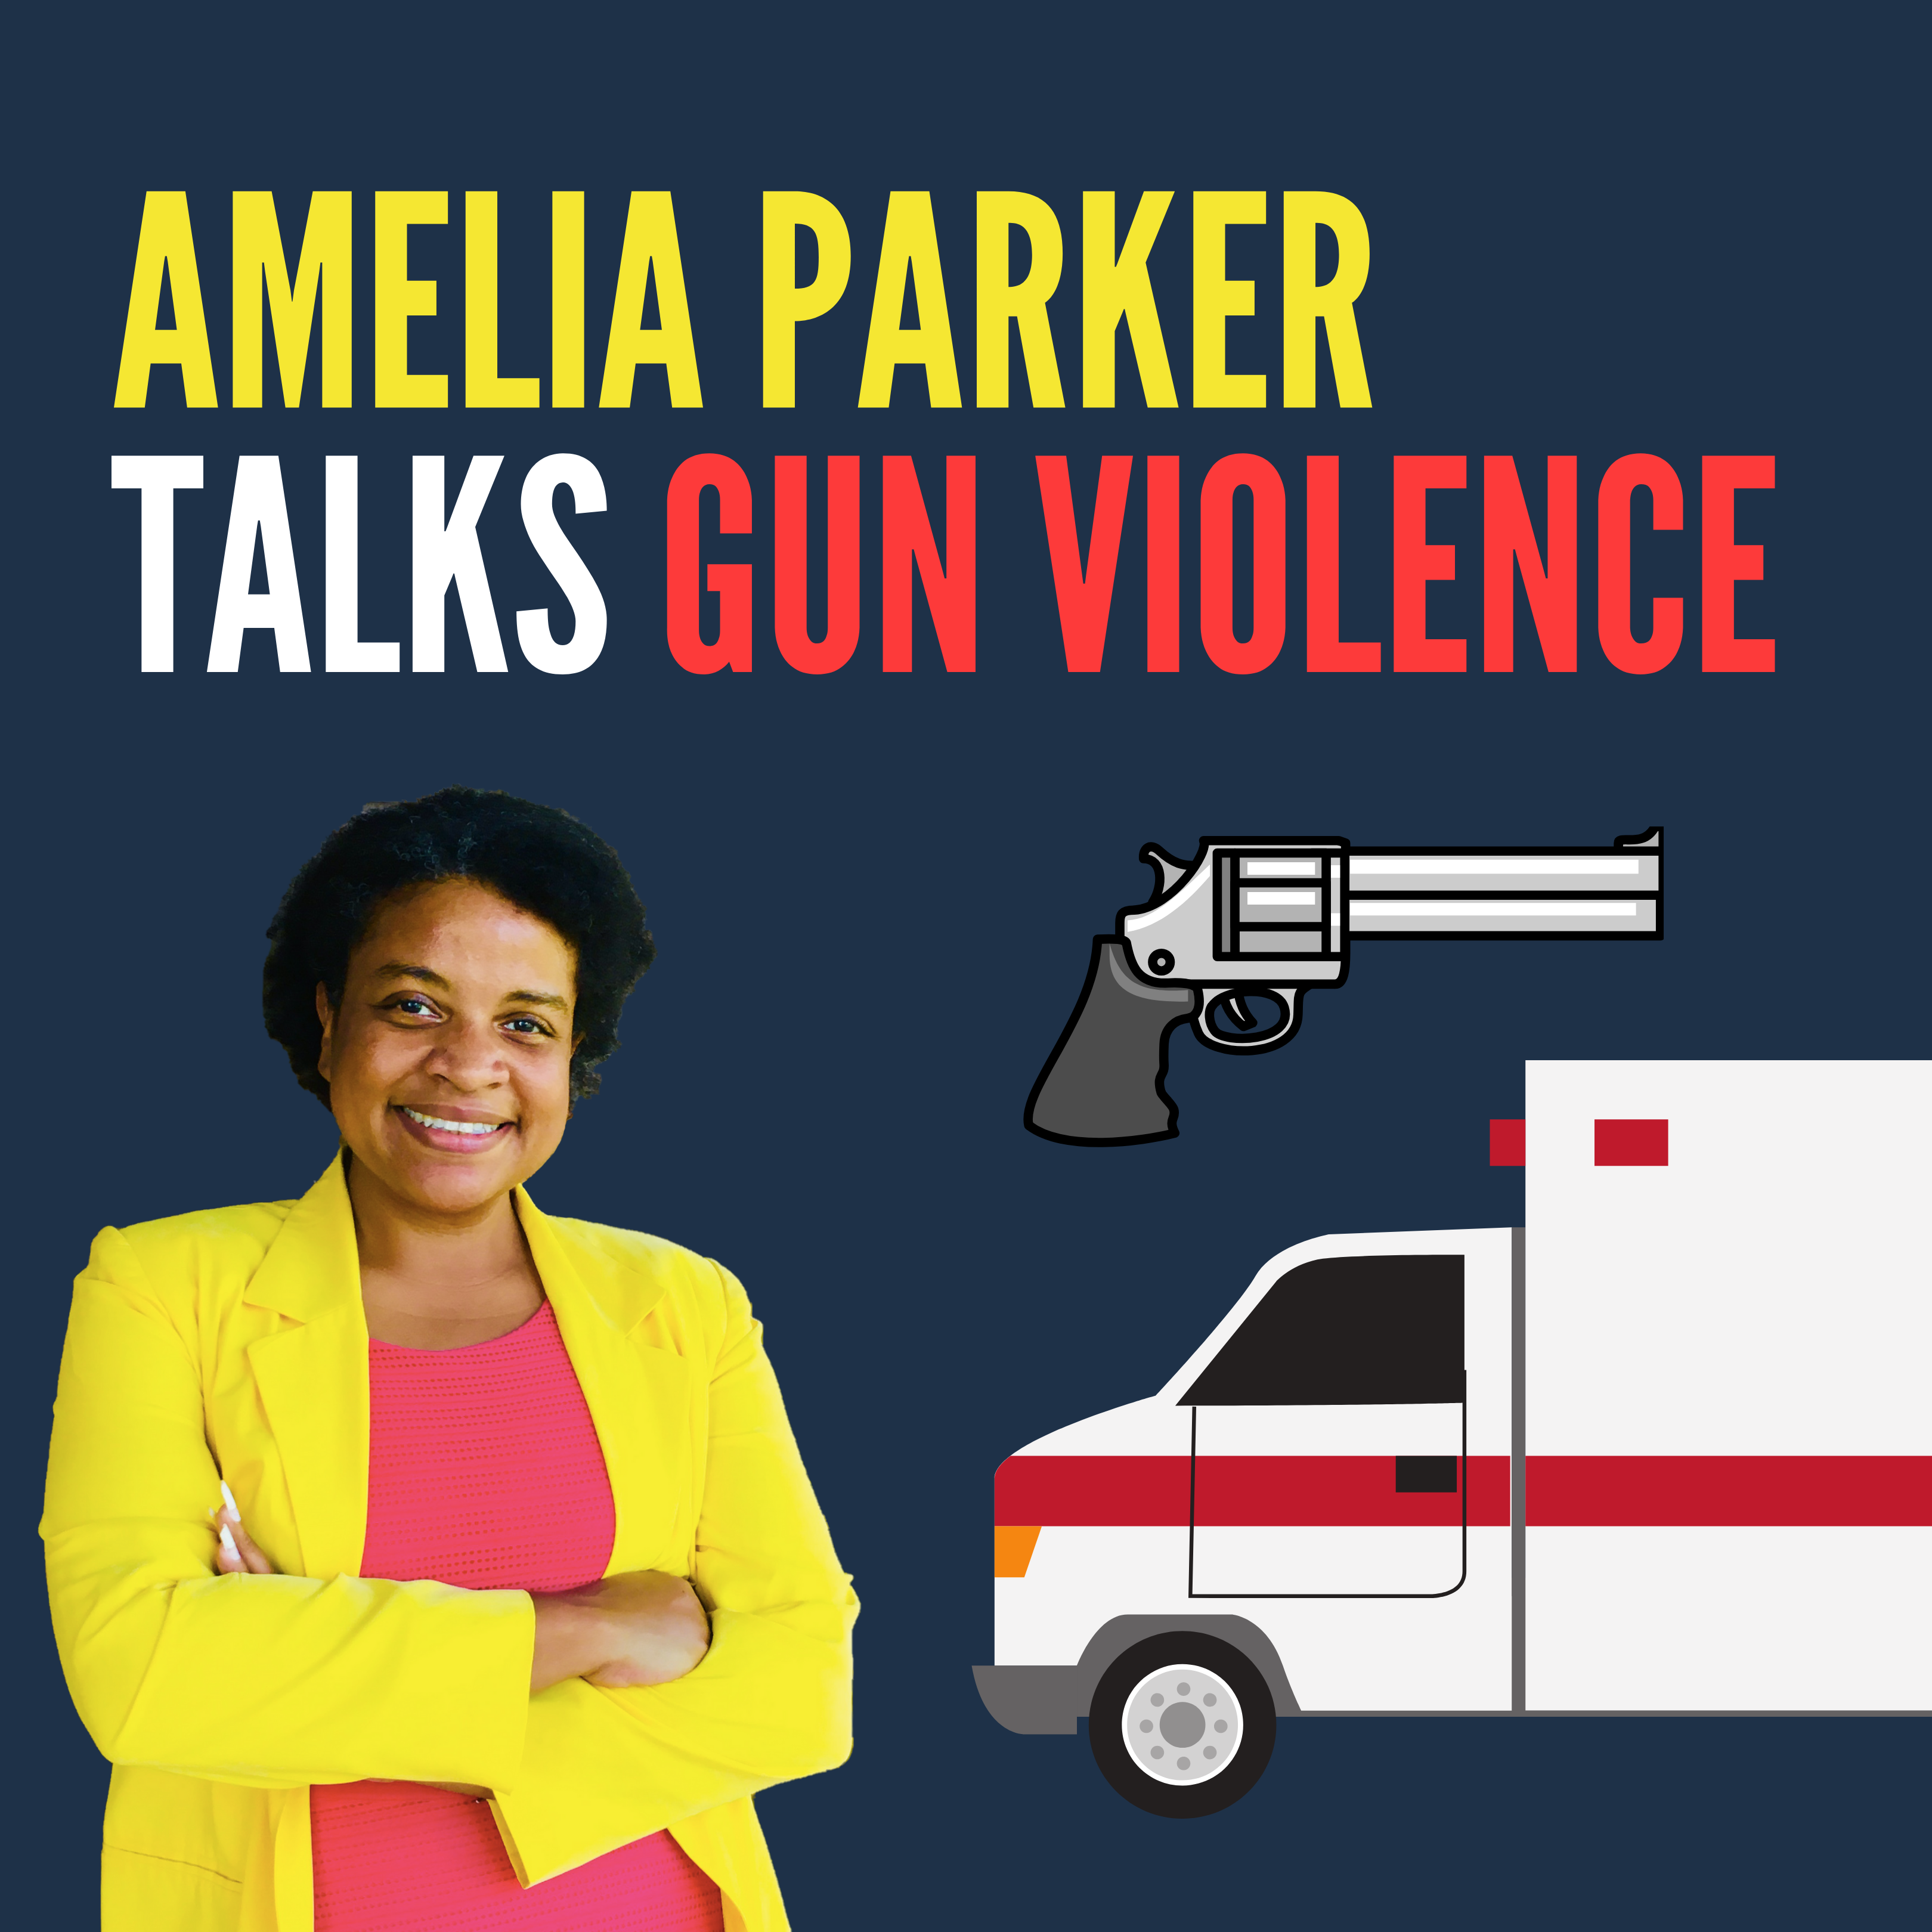 As a member of city council, I would support initiatives that address the root causes of gun violence and work to build healthy and safe communities throughout our city. Gun violence is an overwhelming issue that requires a comprehensive response to the mental health challenges, lack of hope, disinvestment, poverty, among other issues, that create the conditions for gun violence in our communities.